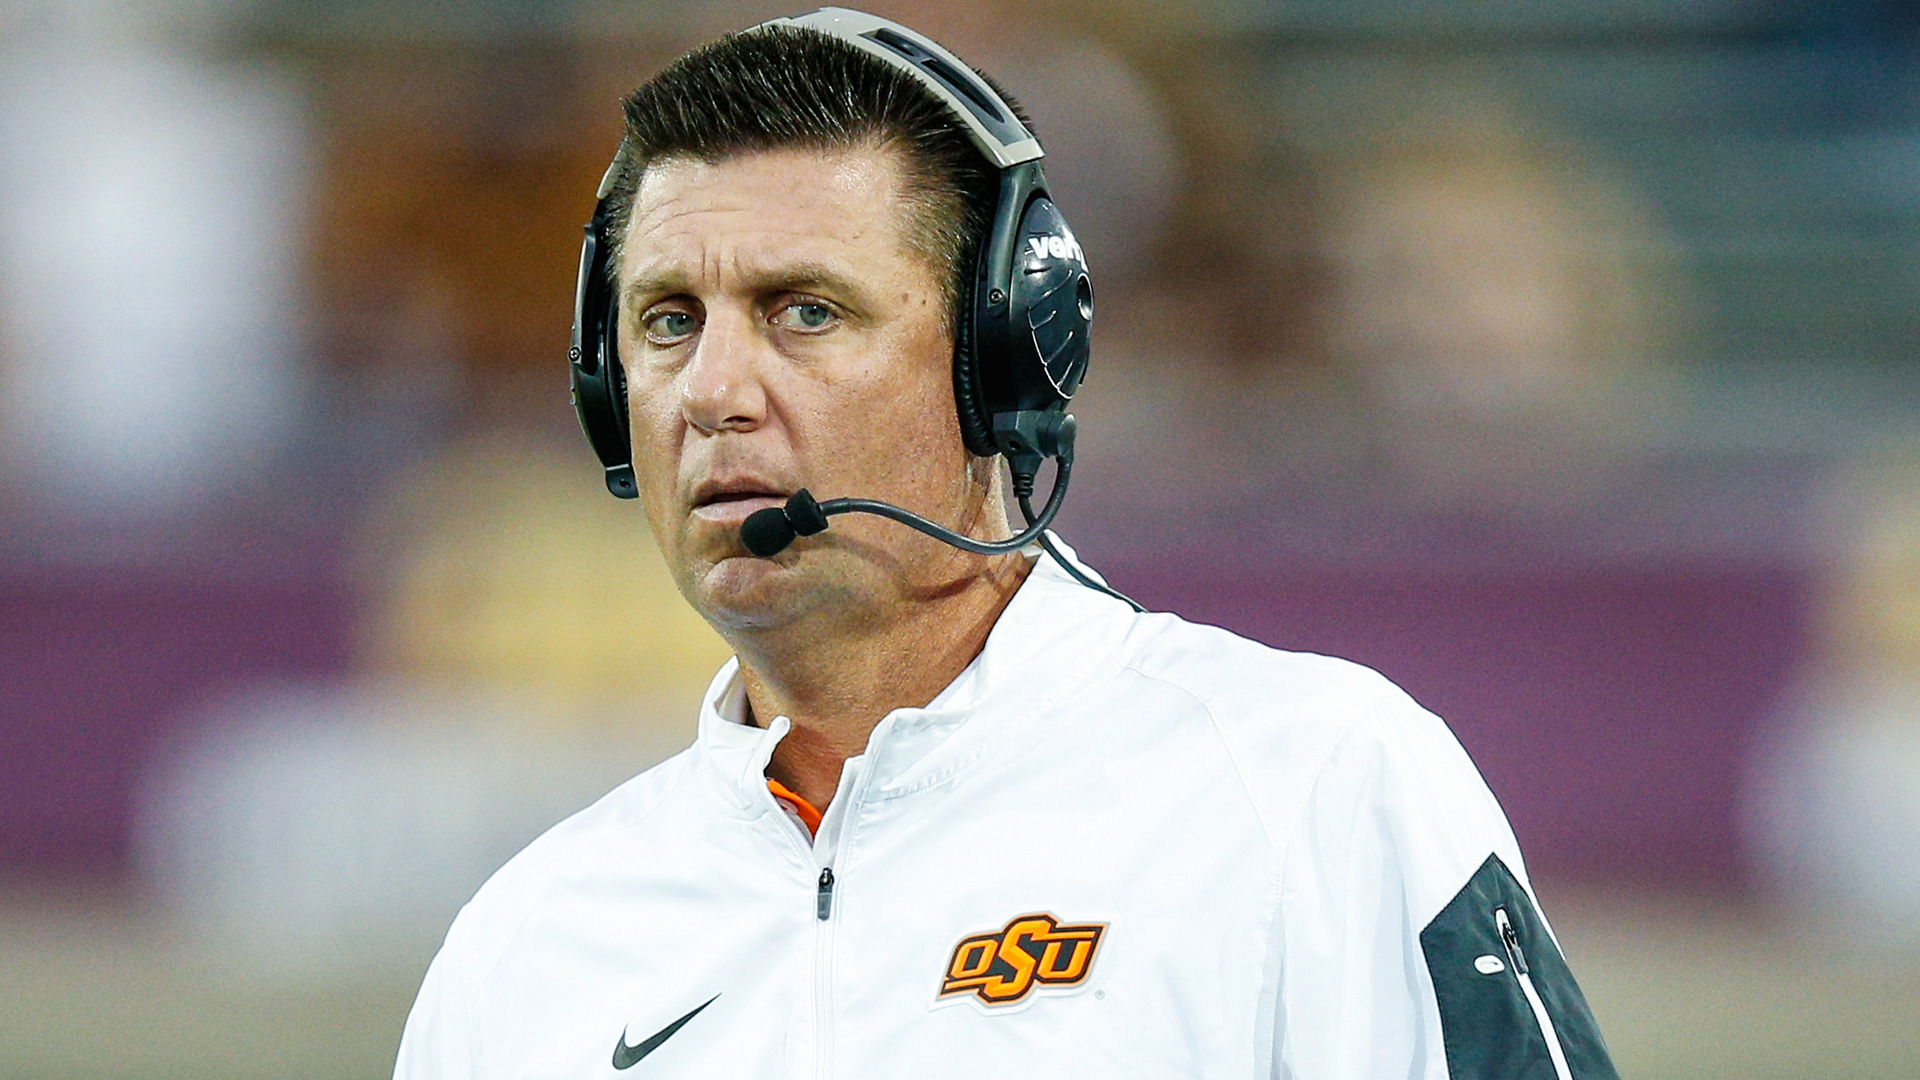 Mike-gundy-090515-getty-ftrjpg_1st5mstpagbm31vou7fr1q6eo7